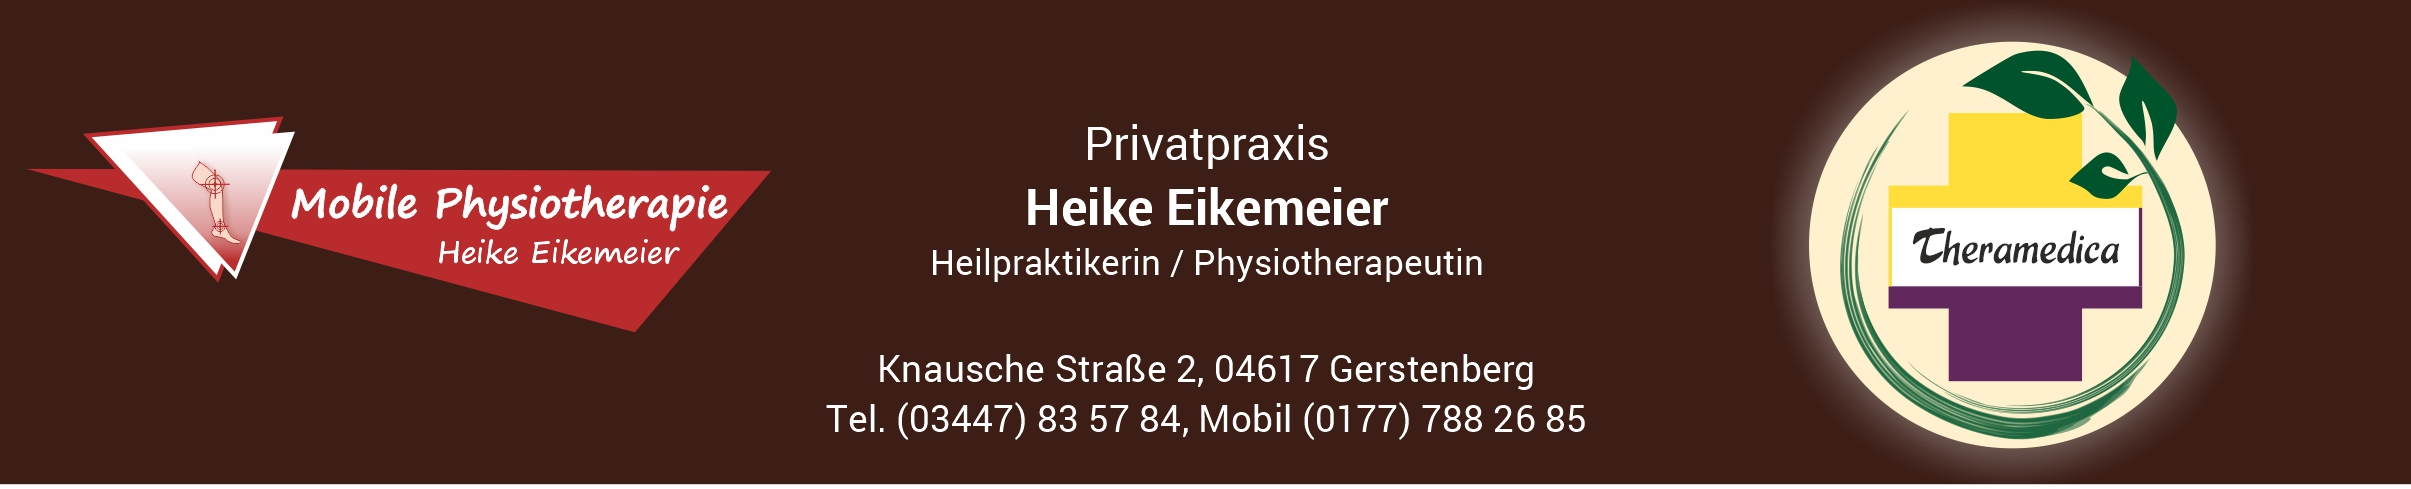 Mobile Physiotherapie + Praxis Theramedica Heike Eikemeier